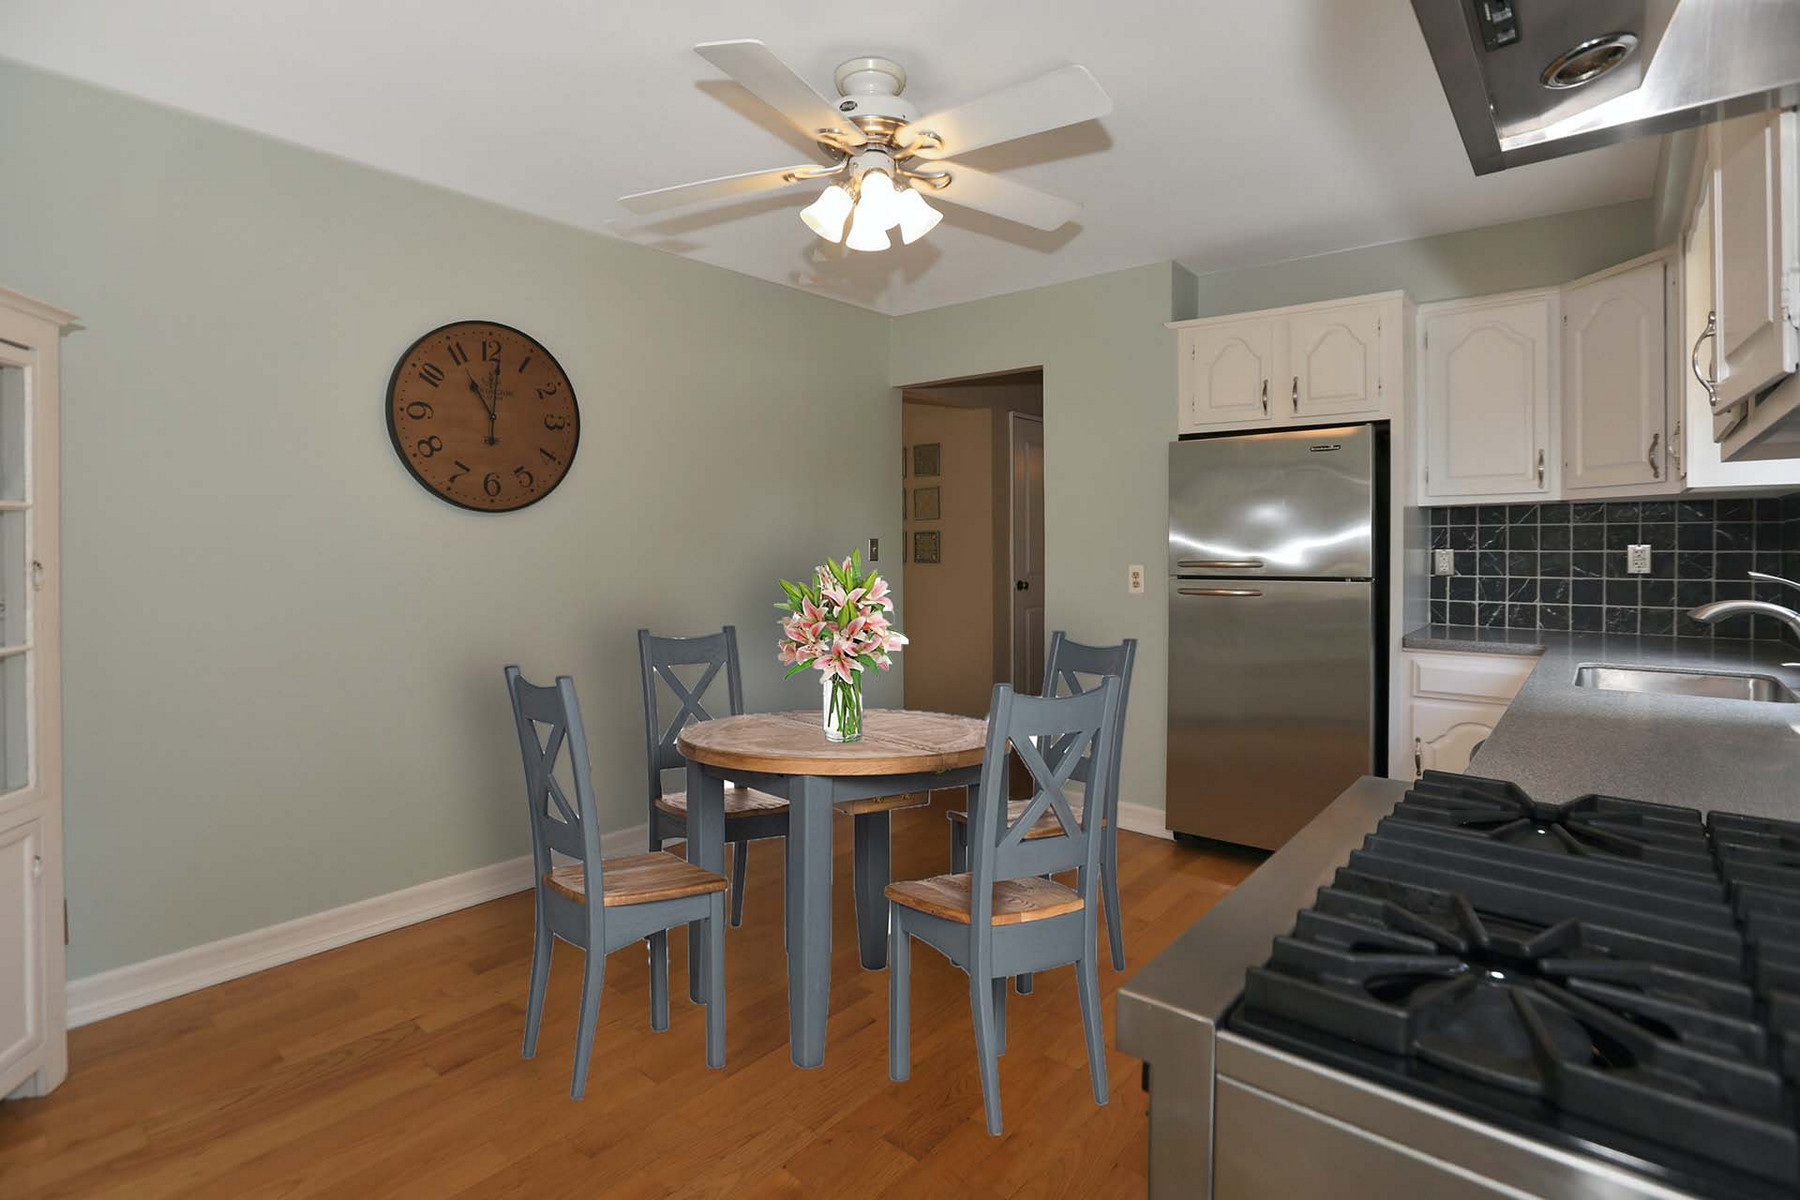 Single Family Homes for Sale at Adorable Gem! 77 Knickerbocker Ave Hillsdale, New Jersey 07642 United States